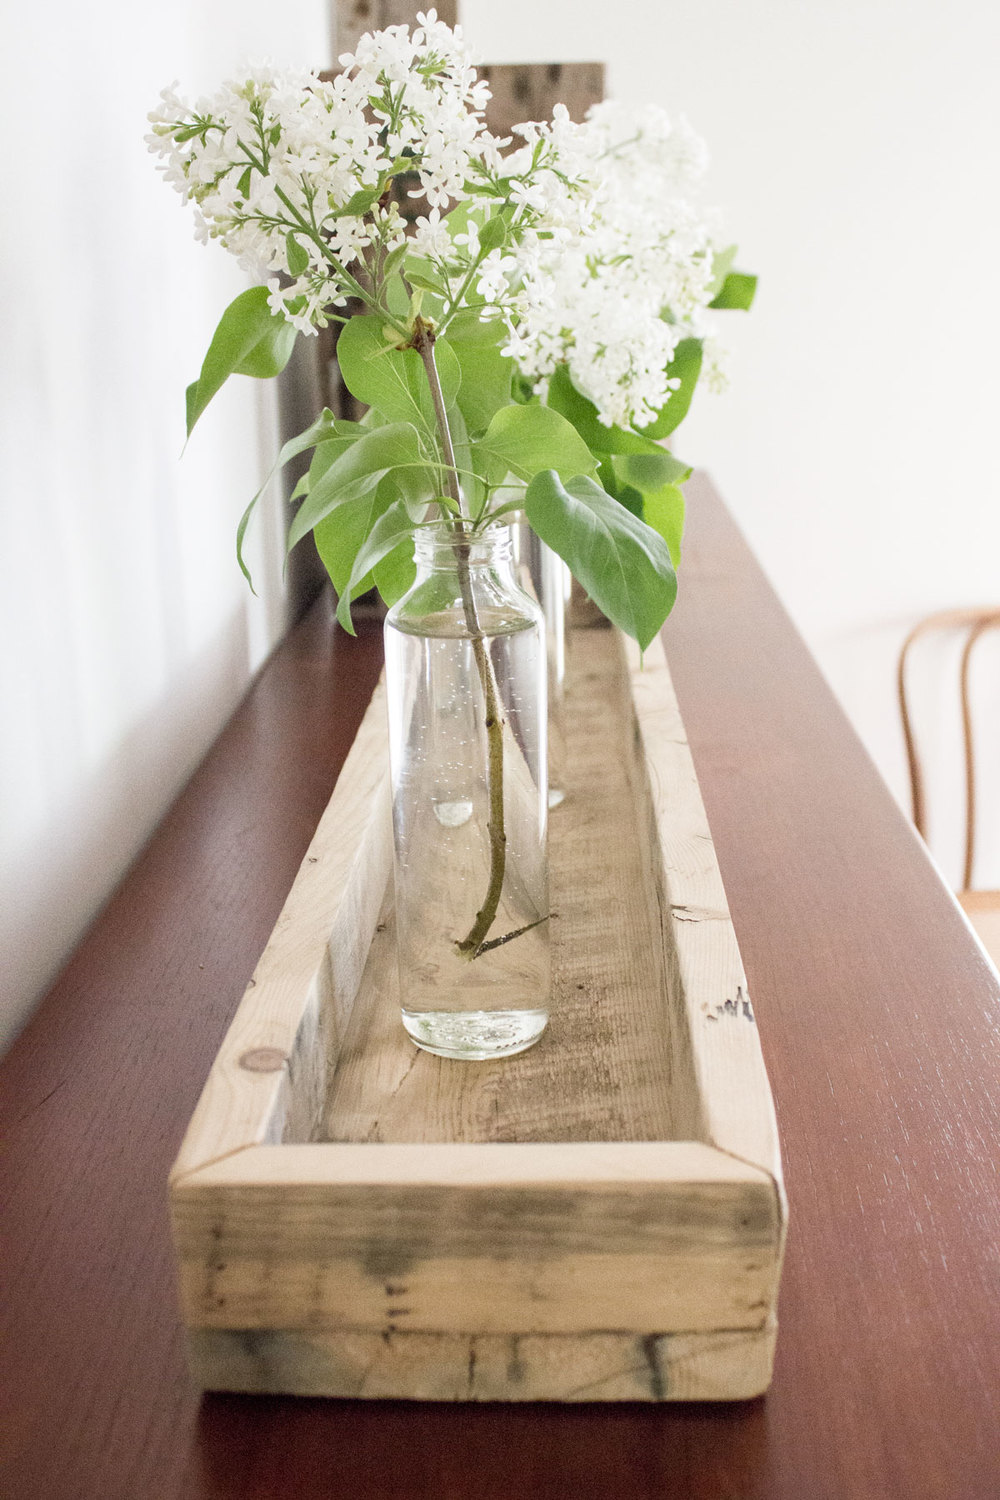 DIY reclaimed barn board tray